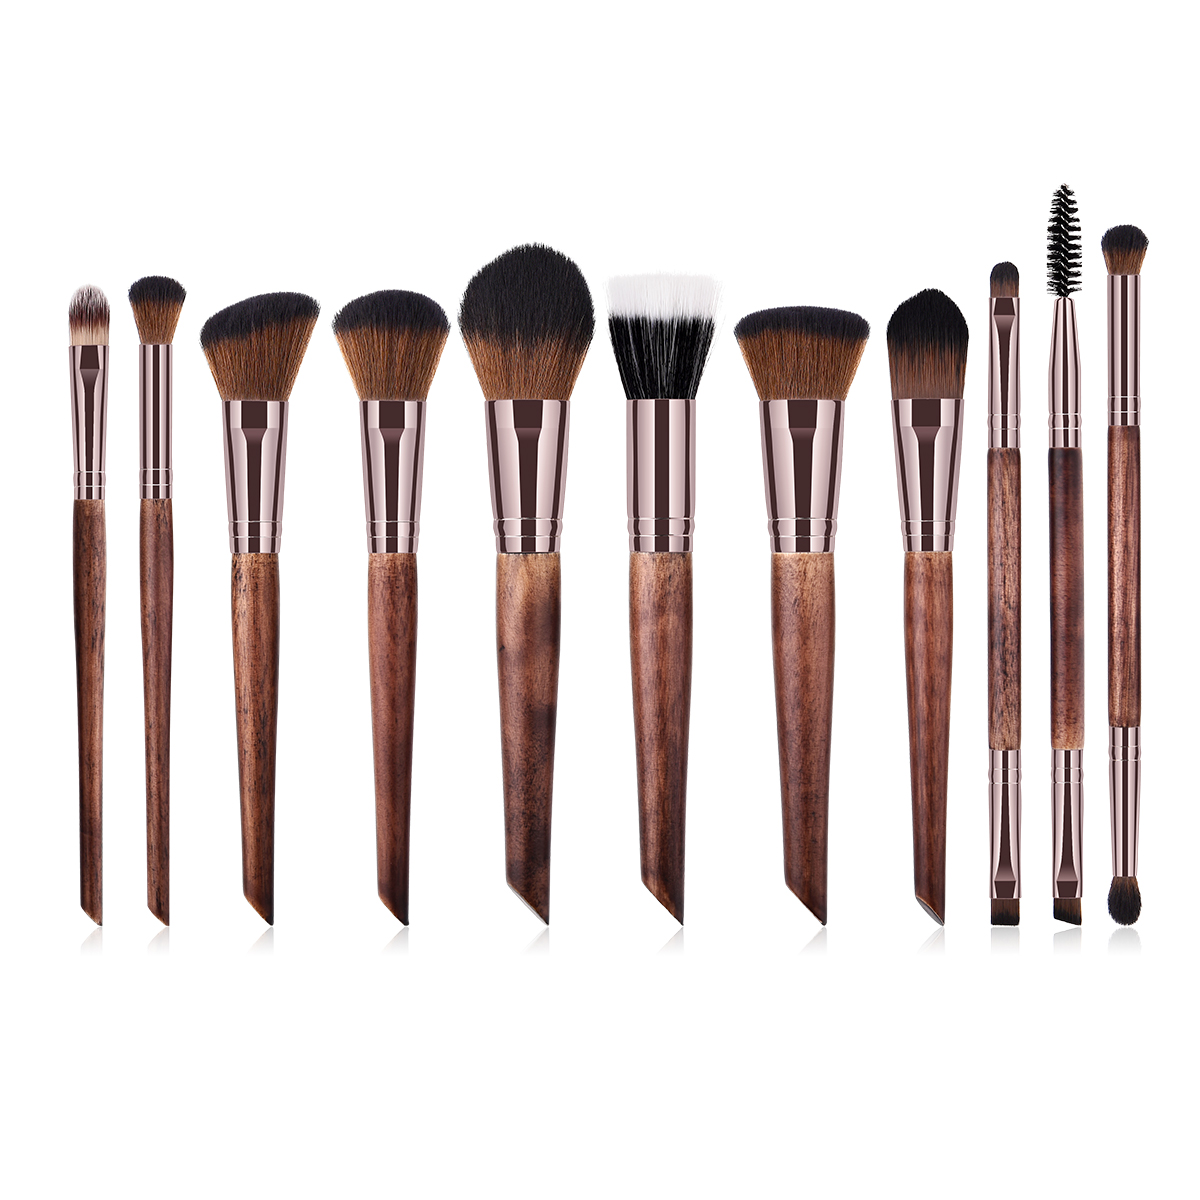 BBL 11pcs Coffee Makeup Brushes Premium Makeup Brush Set Professional Luxury Wood Handle Powder Blending Brush Cosmetics Tools цены